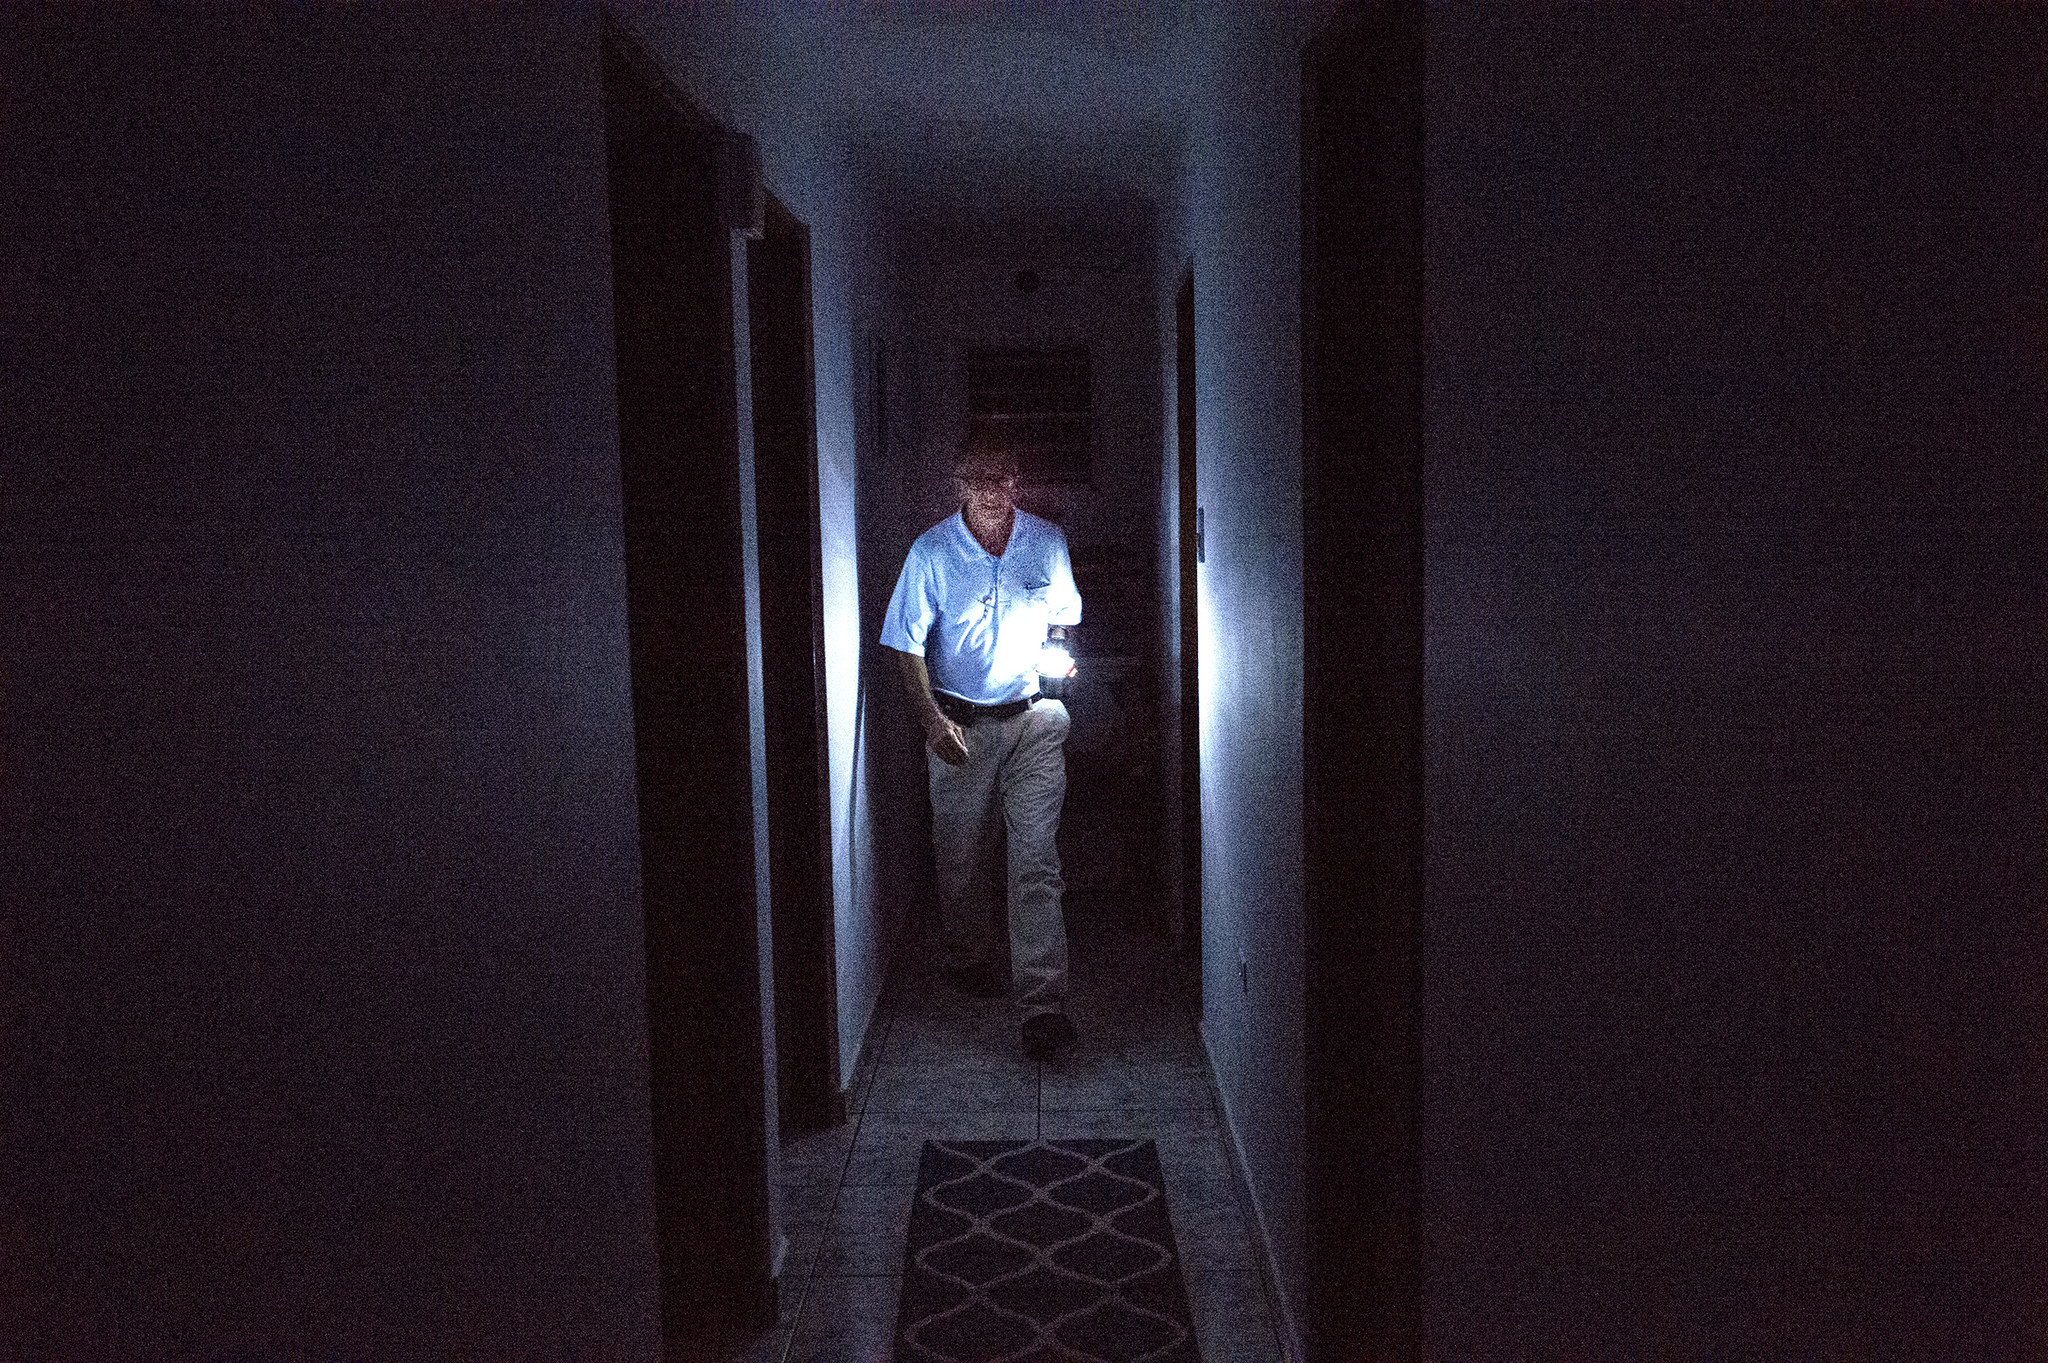 David Morales, of Patillas, Puerto Rico, uses a solar lamp to navigate through his home. Many people in Puerto Rico like Morales are still without electricity and running water.